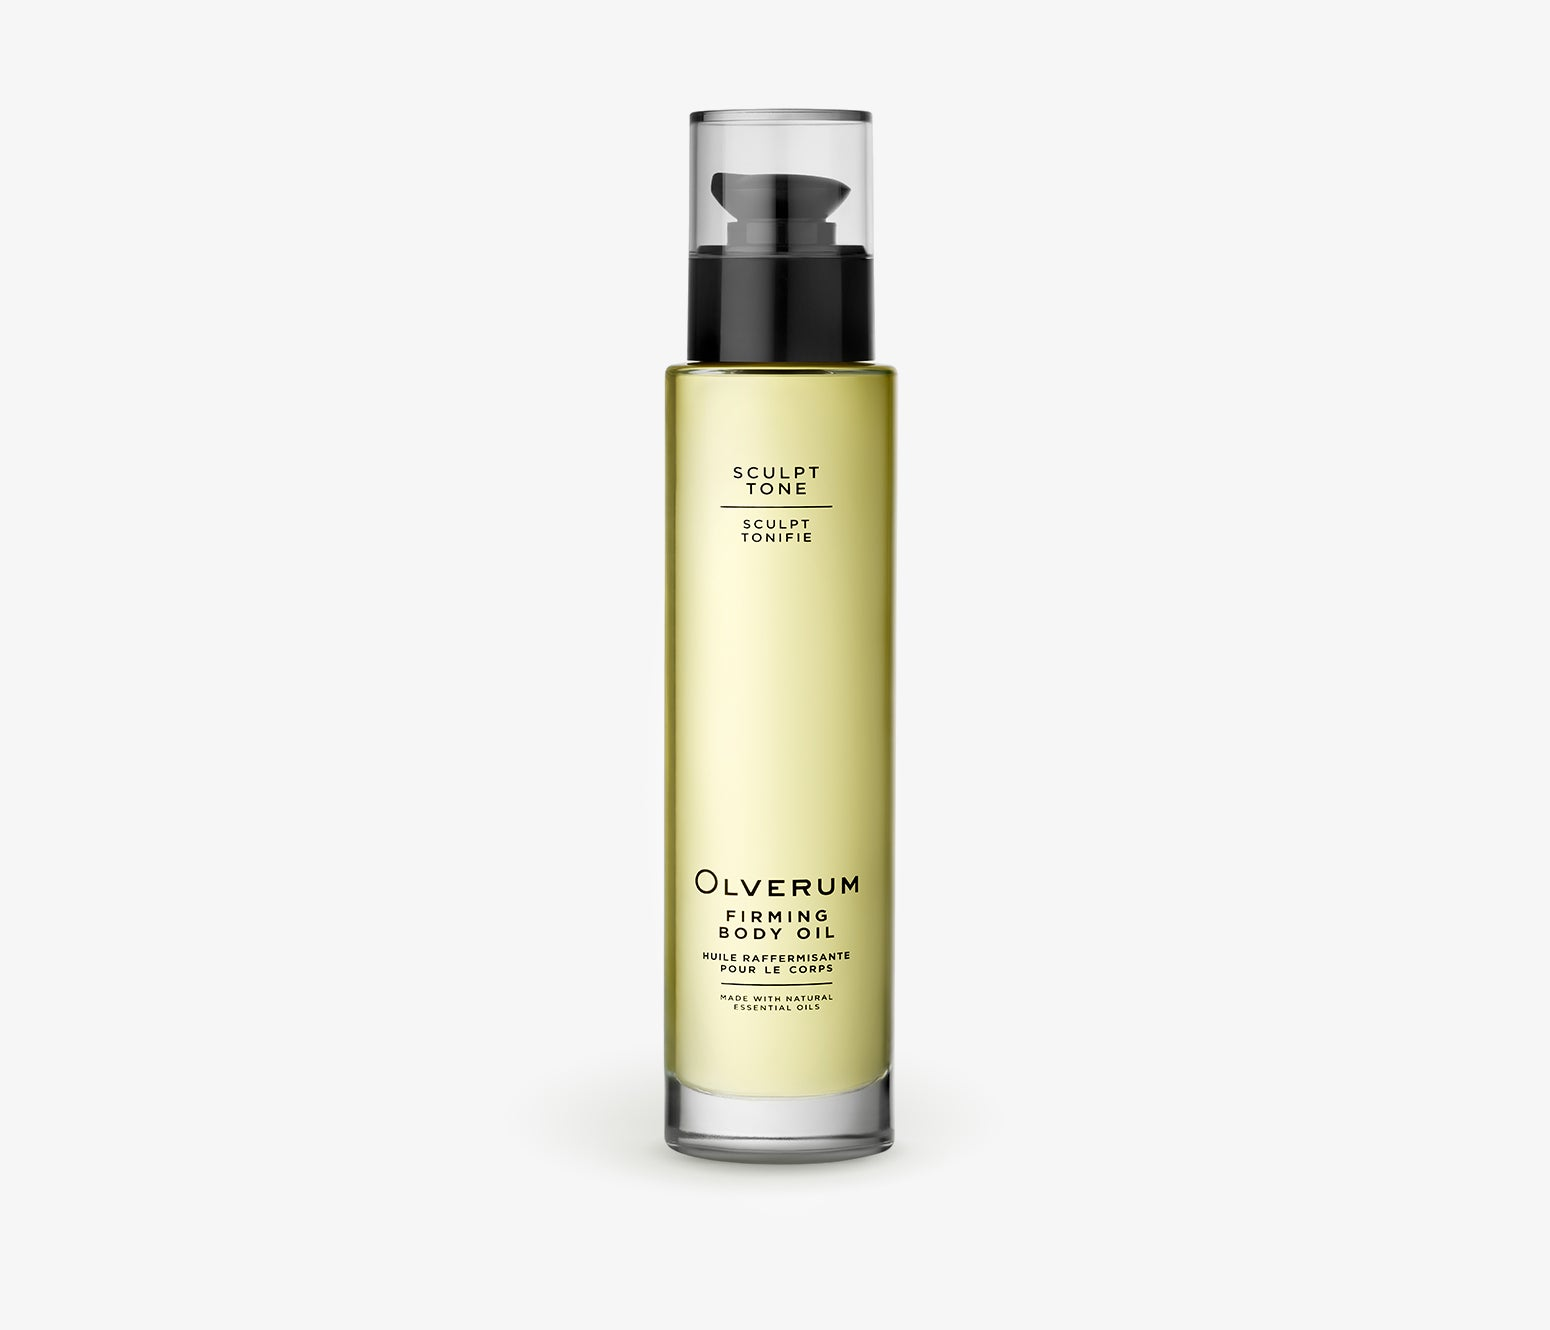 Olverum Firming Body Oil